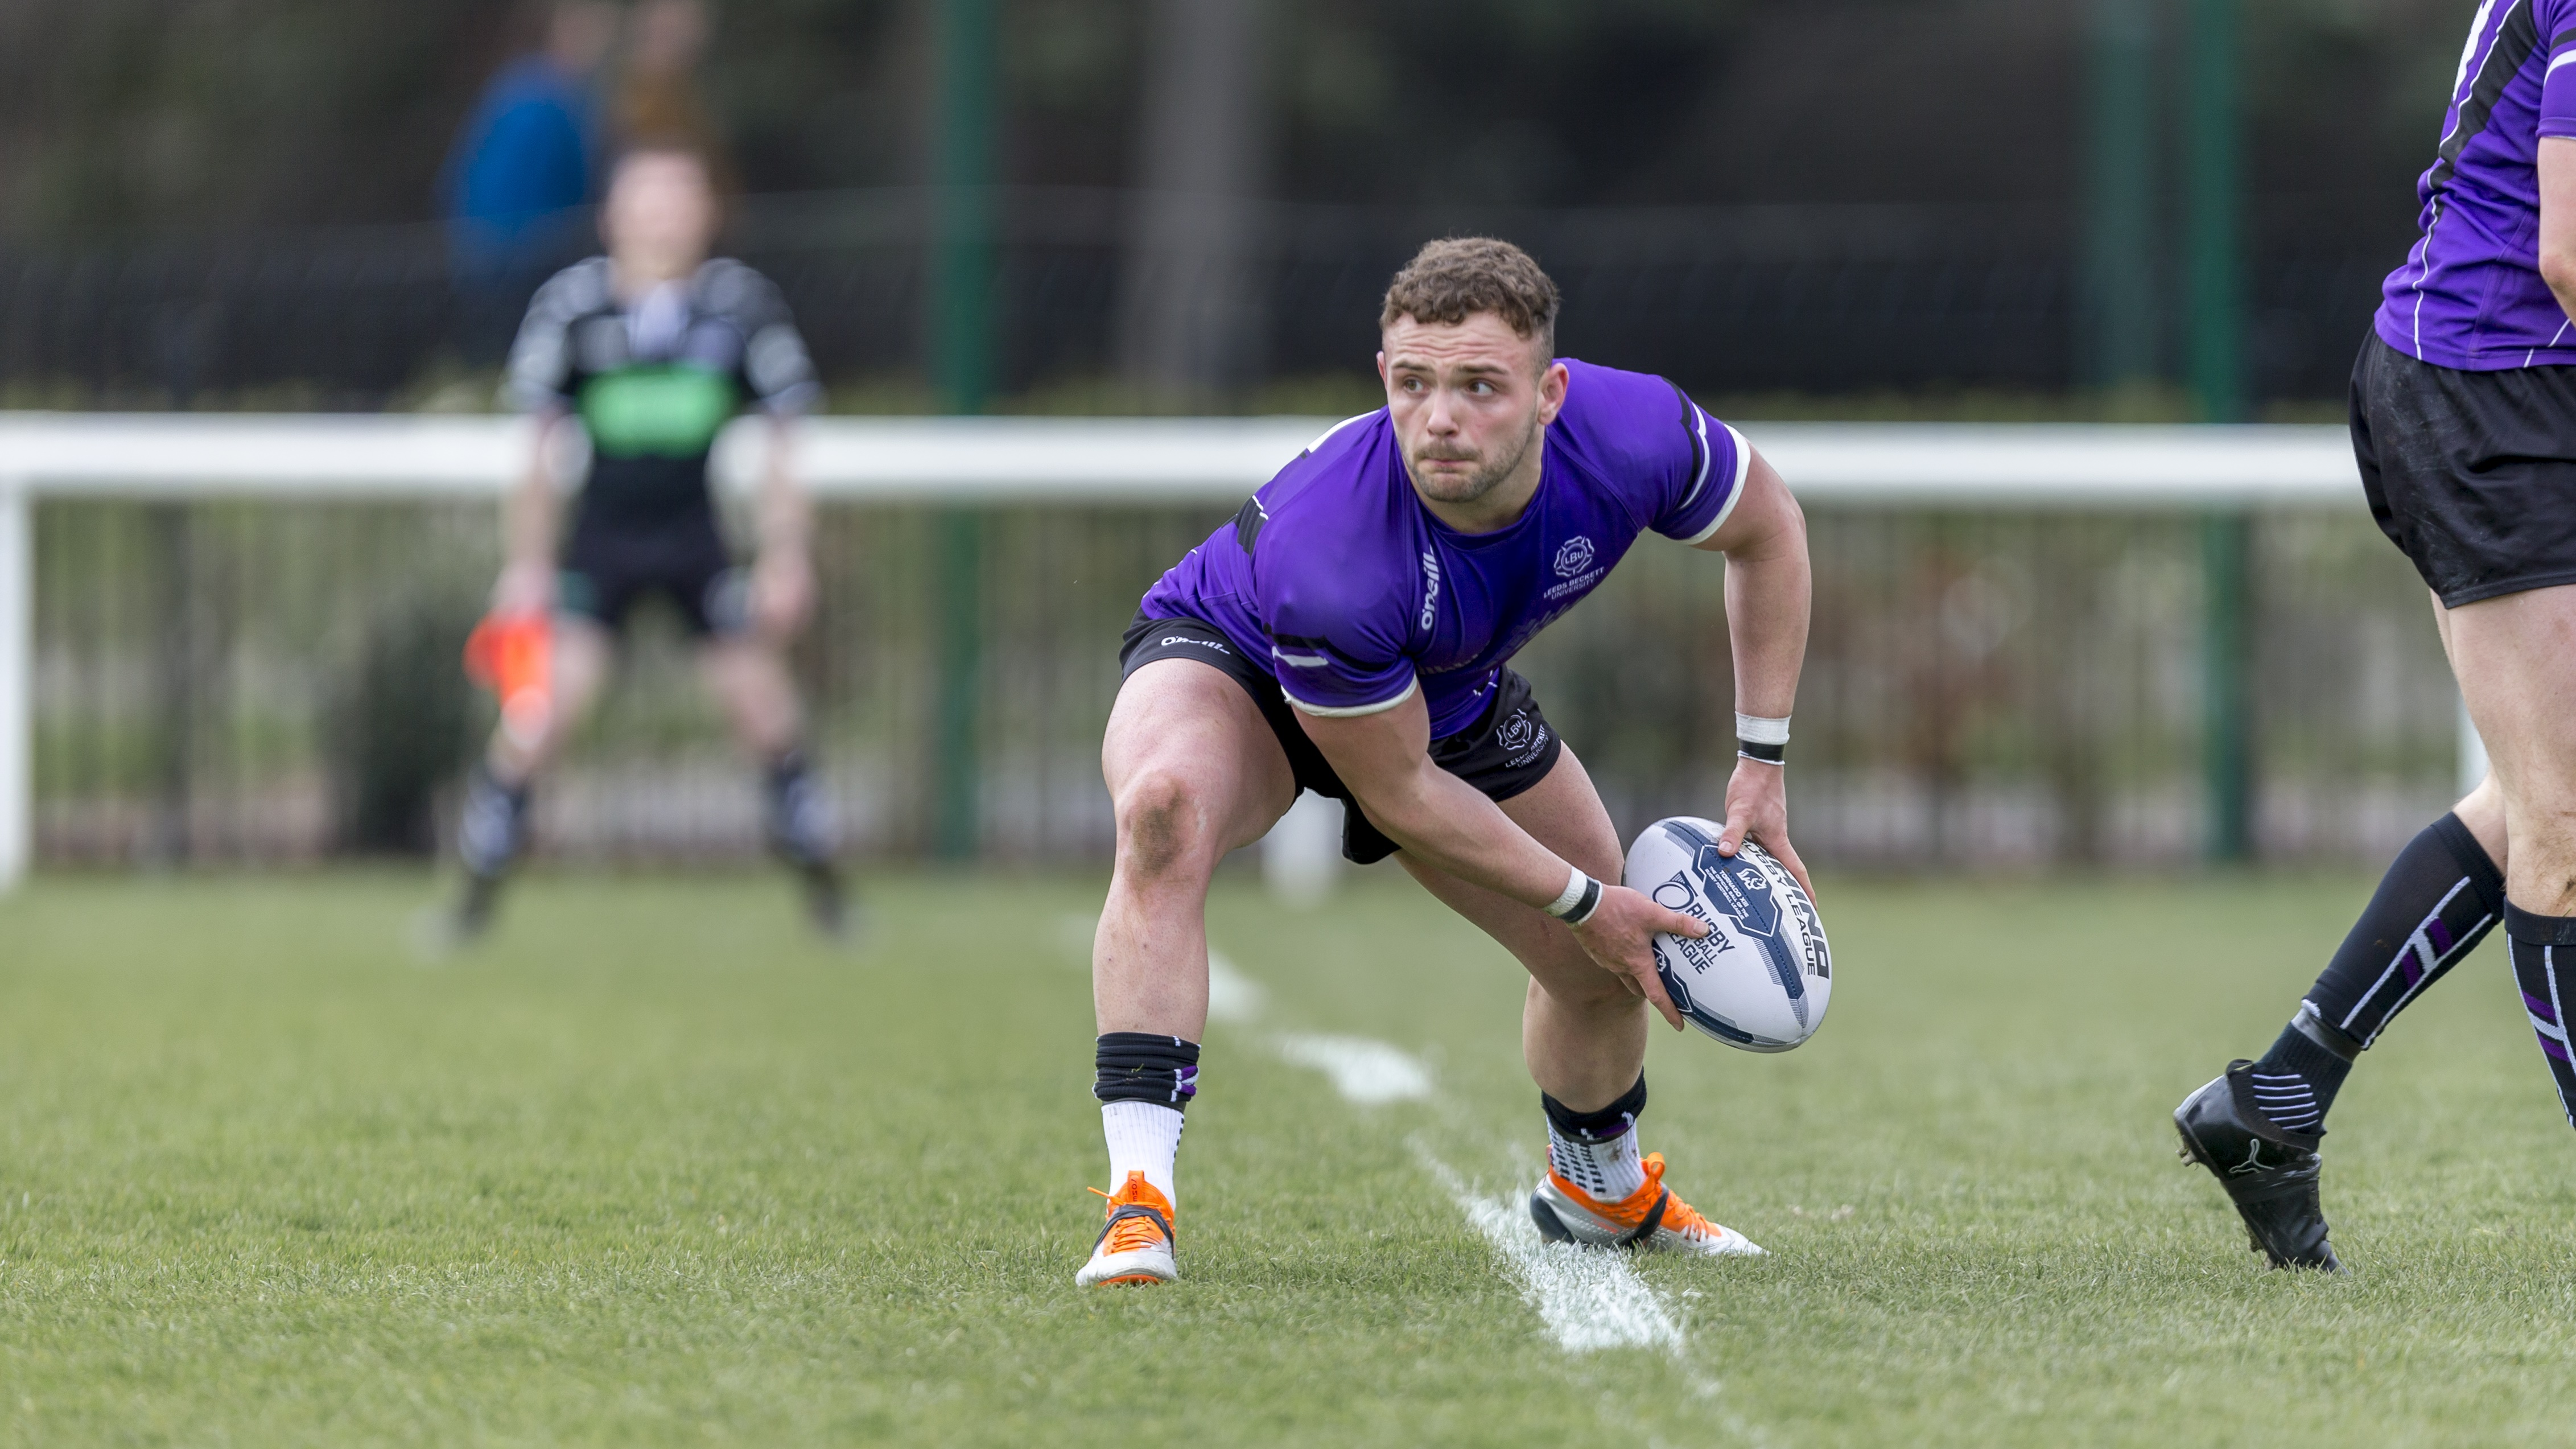 Curtis Davies (pictured) will be one of four current Leeds Beckett University students to play in the rugby league challenge cup semi final